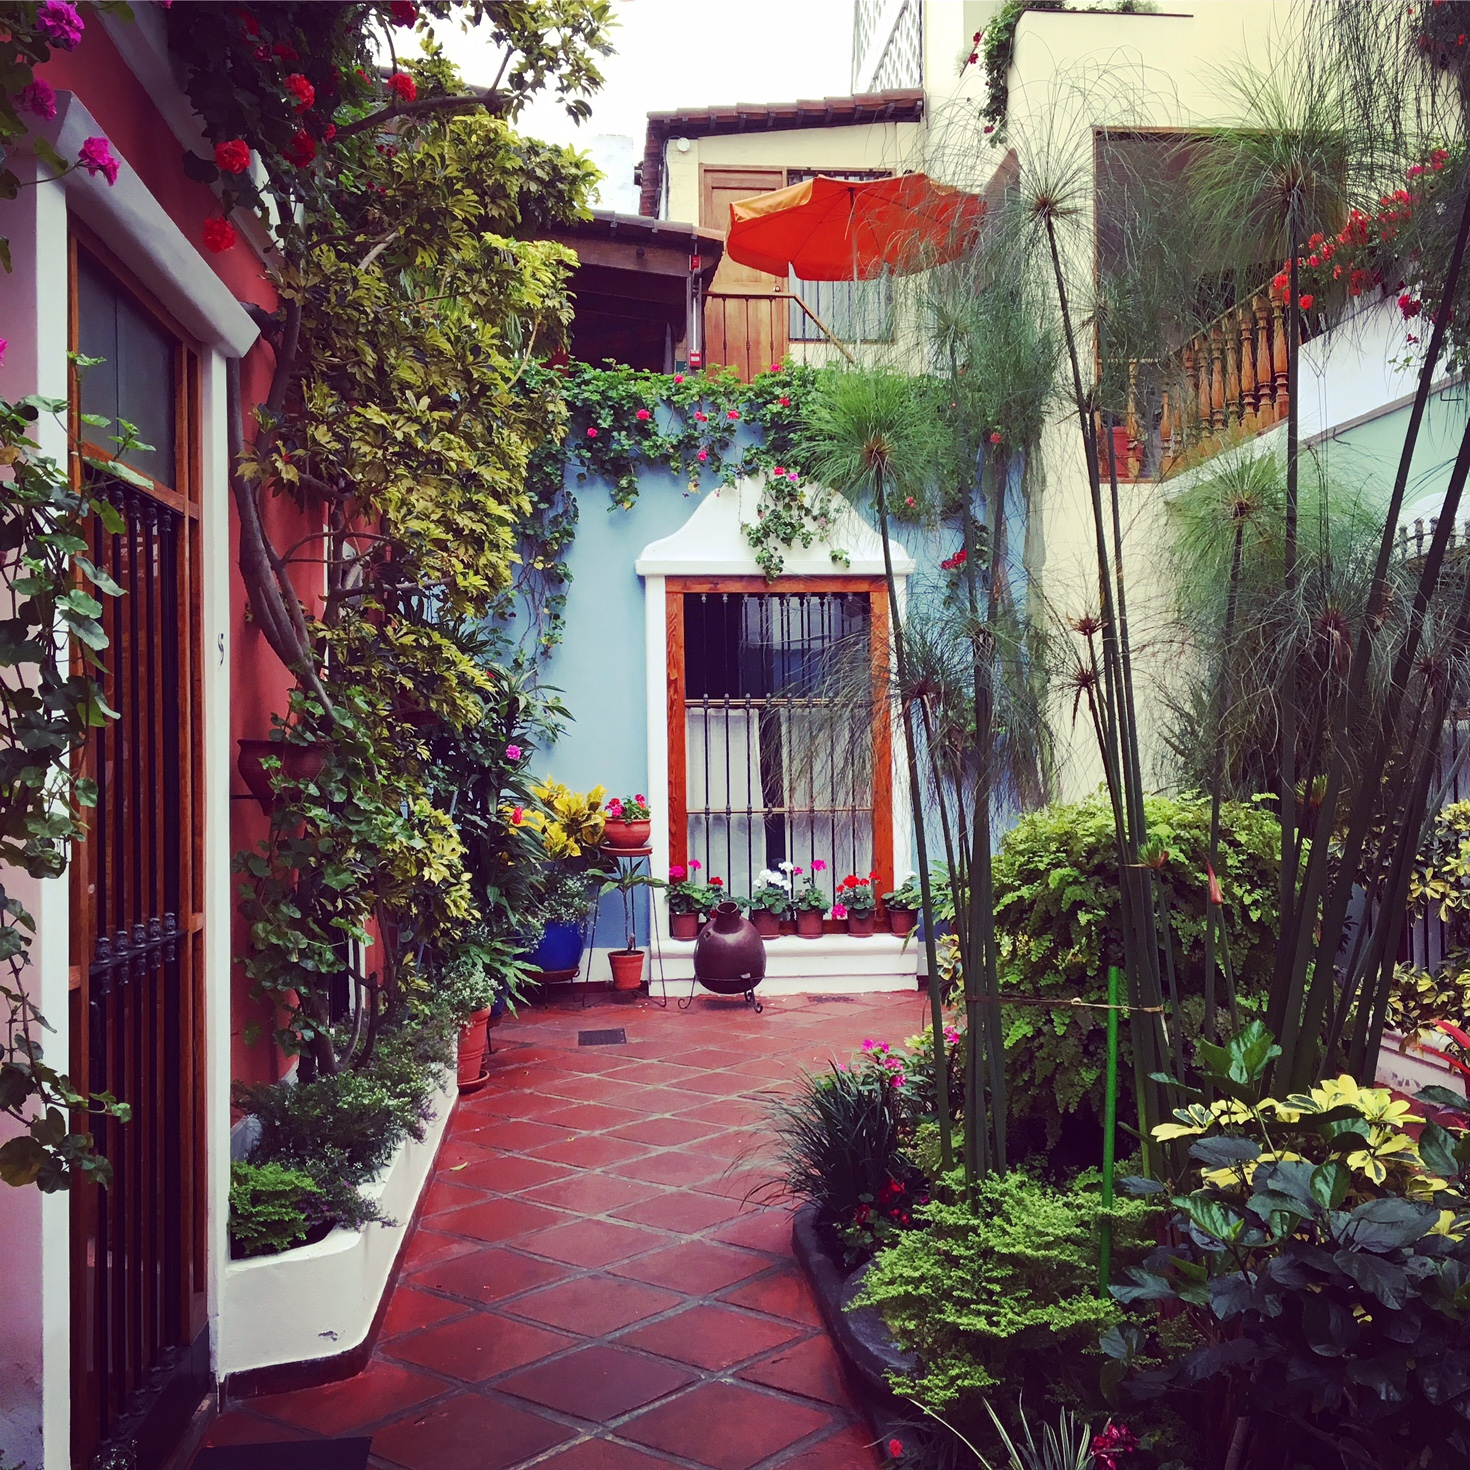 El Patio, my favorite hotel in Lima!